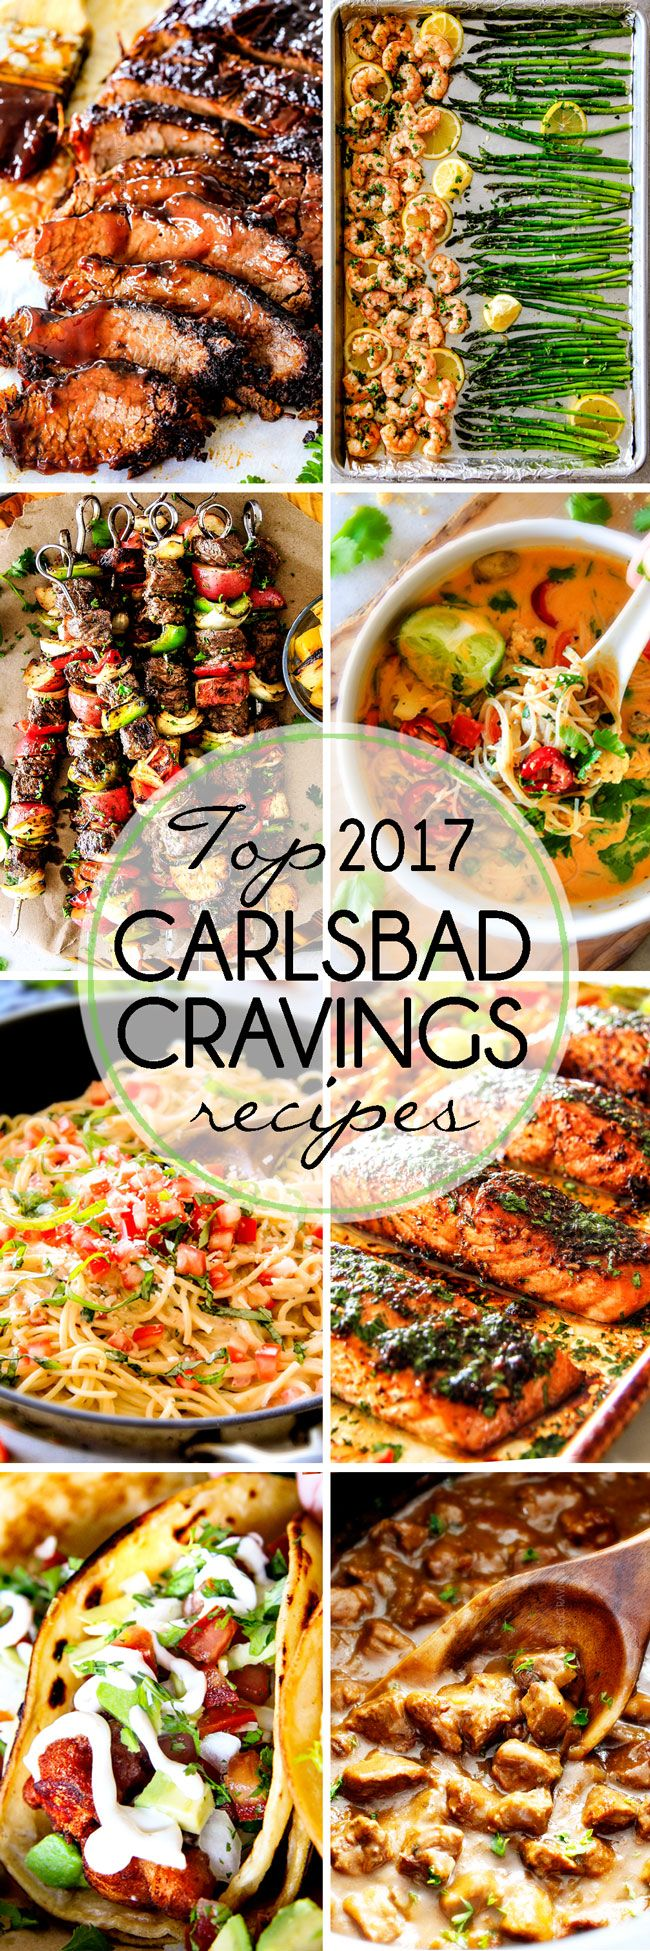 Most Popular Recipes of 2017 - Carlsbad Cravings